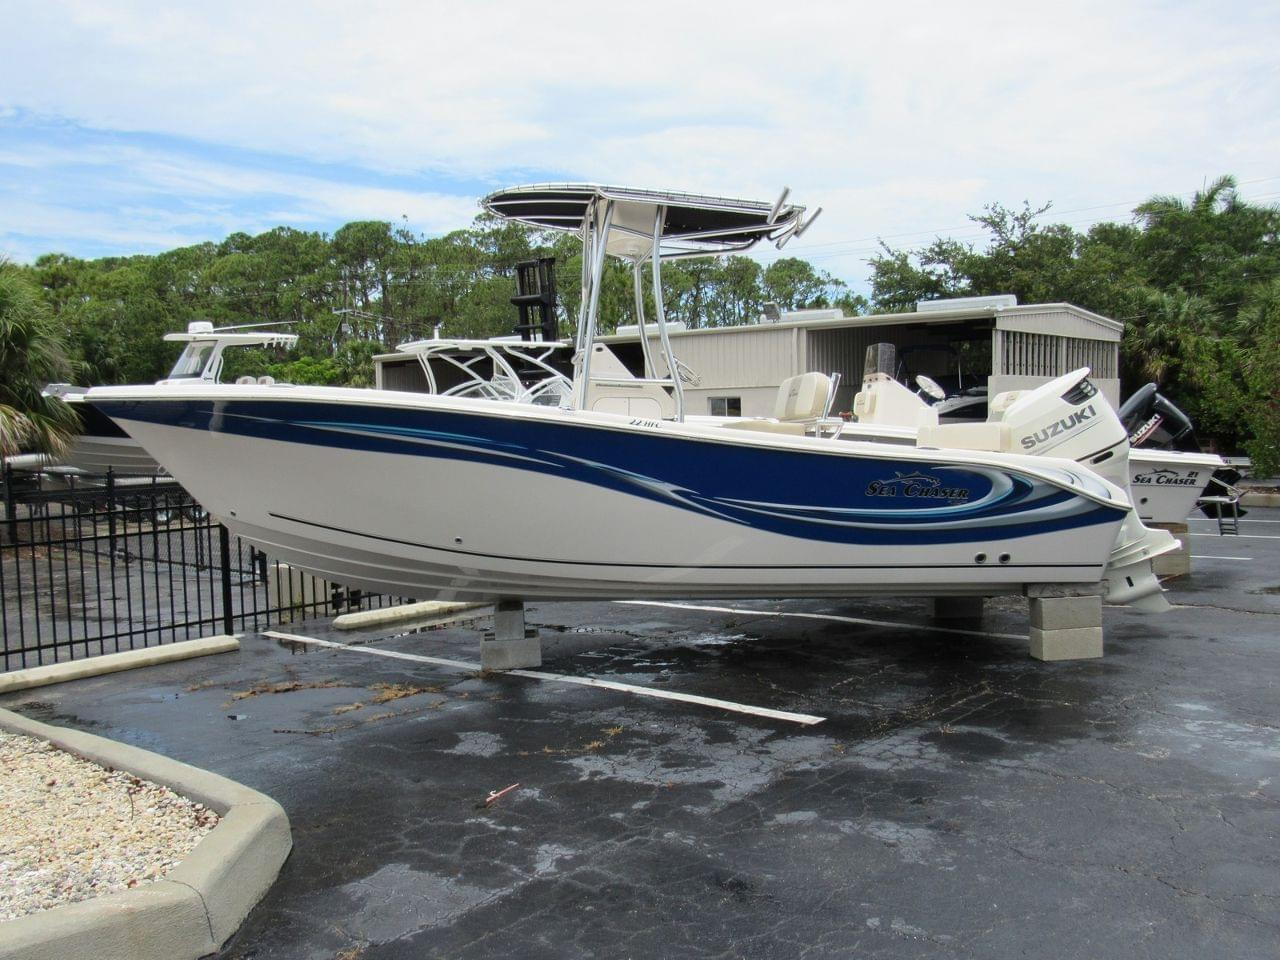 Sea Chaser 22 HFC